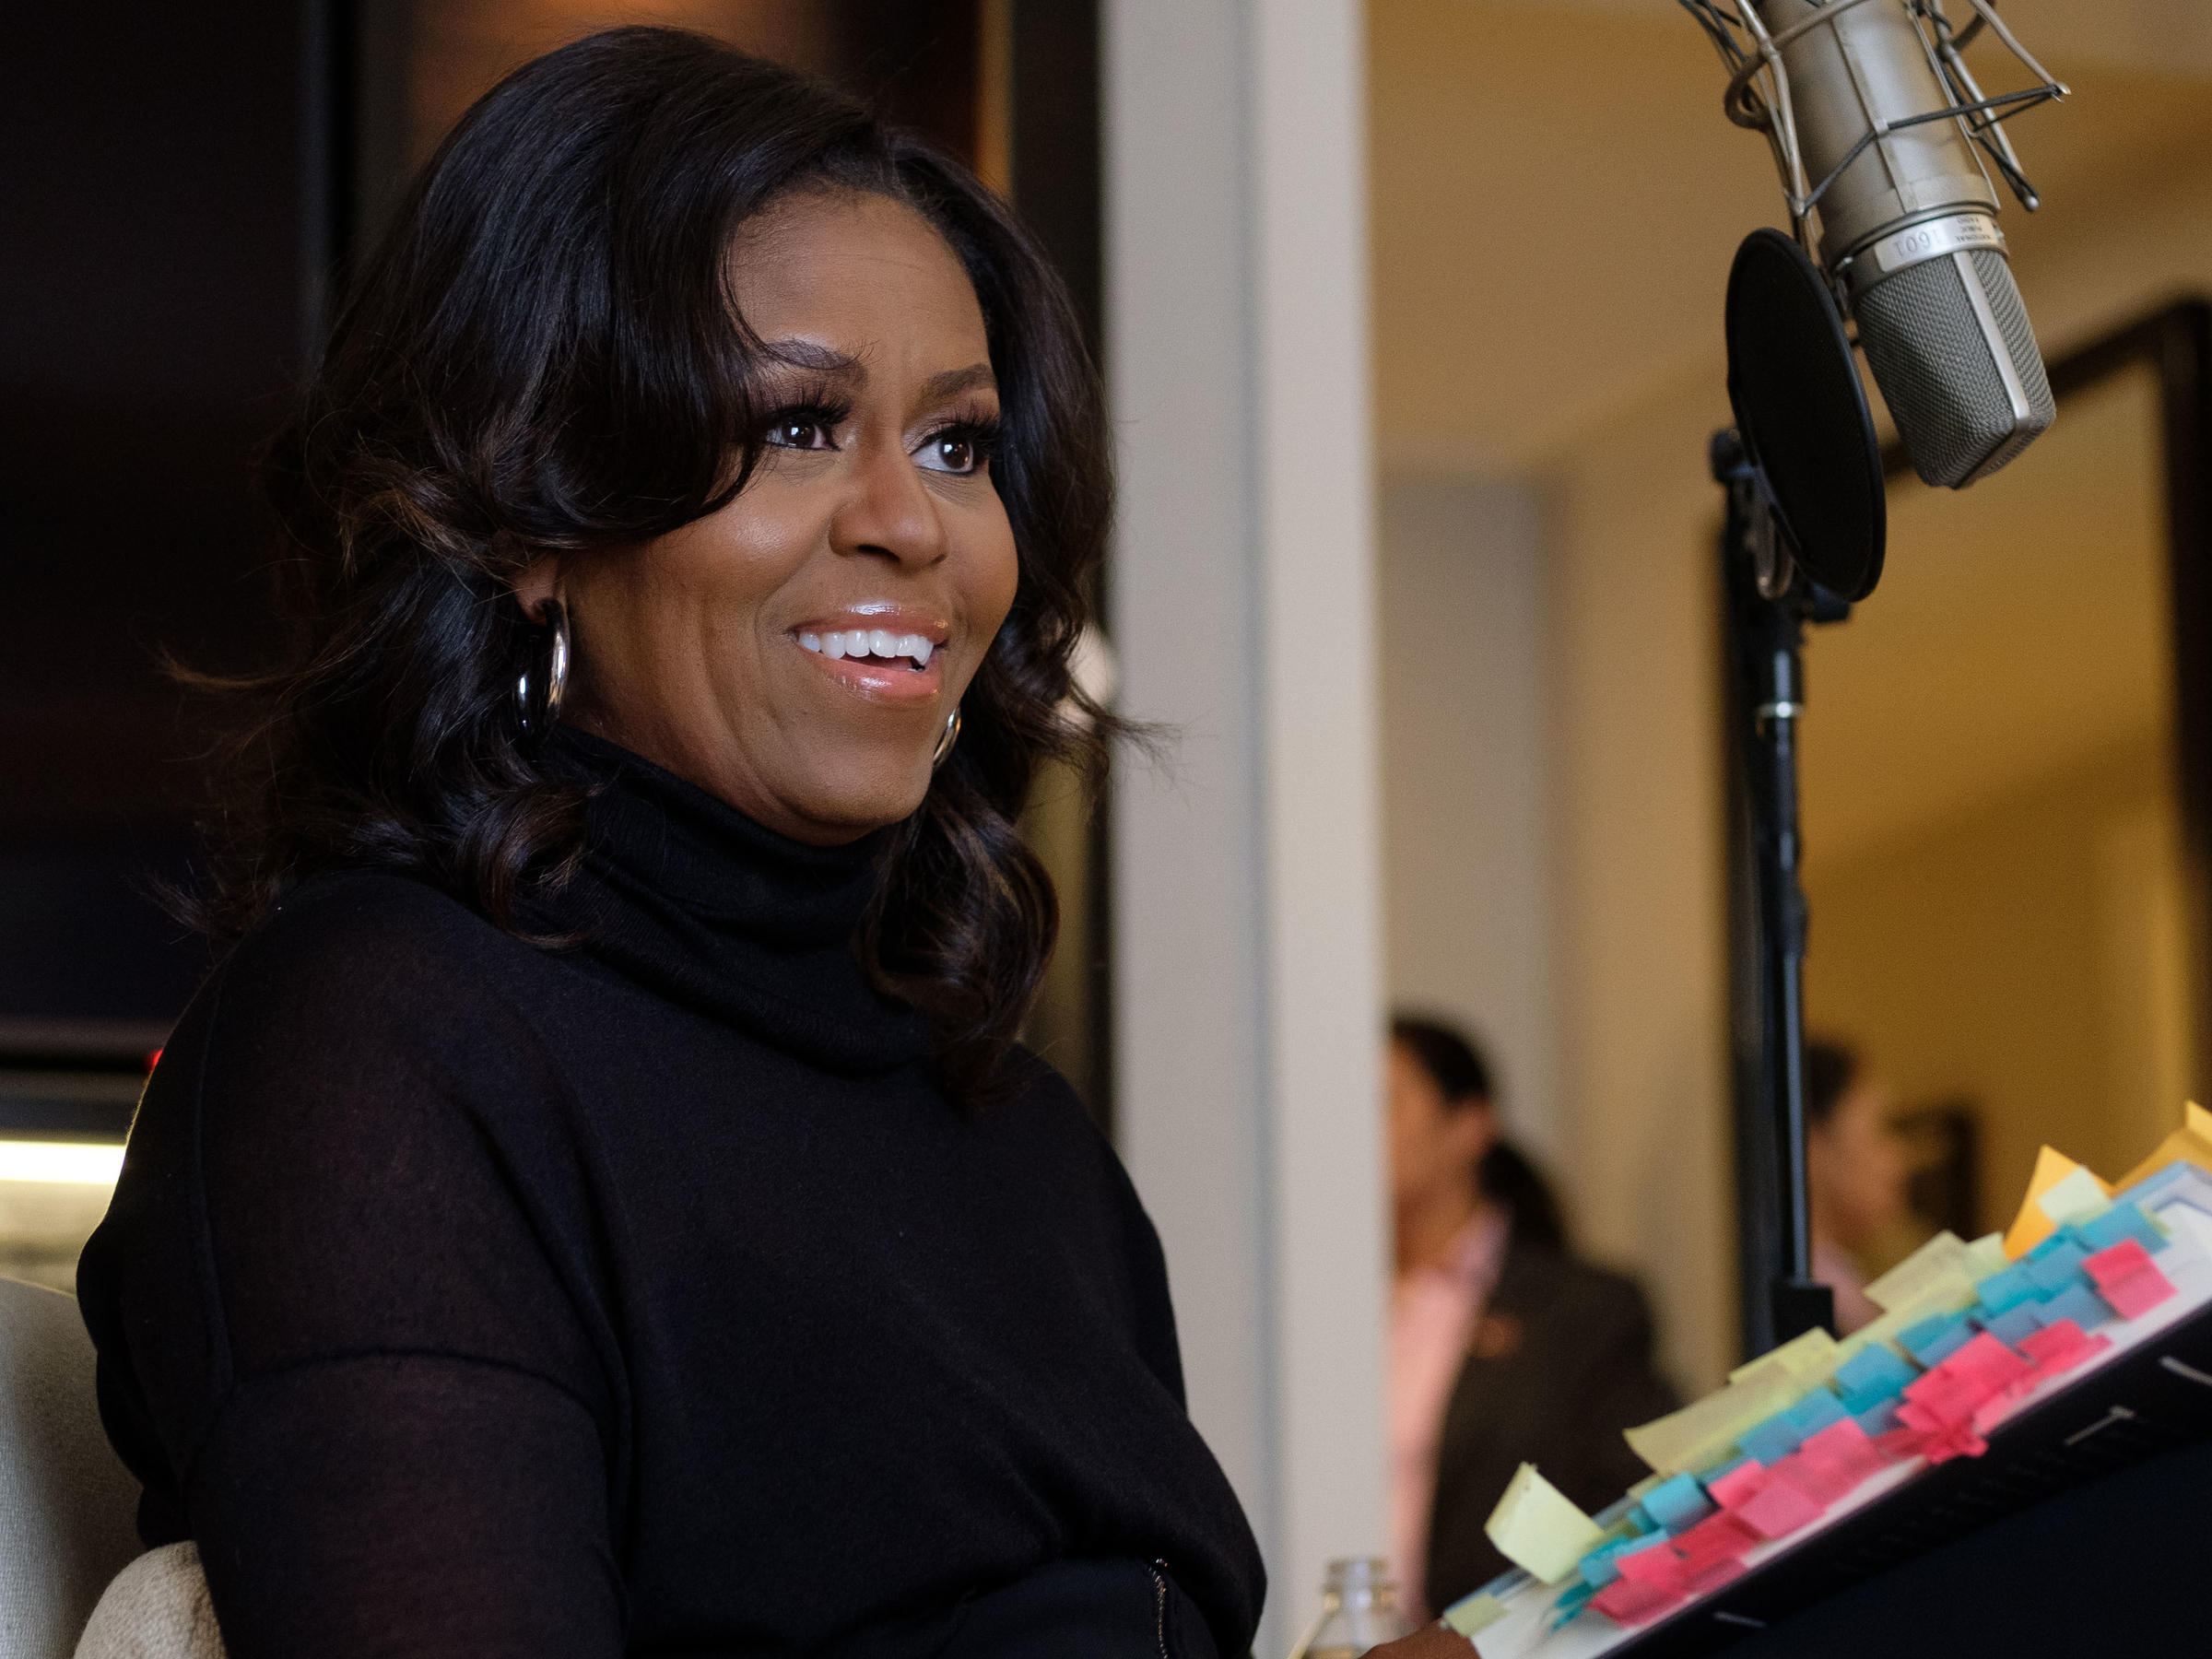 Michelle Obama Tells NPR She 'Never Ever' Would Have Chosen